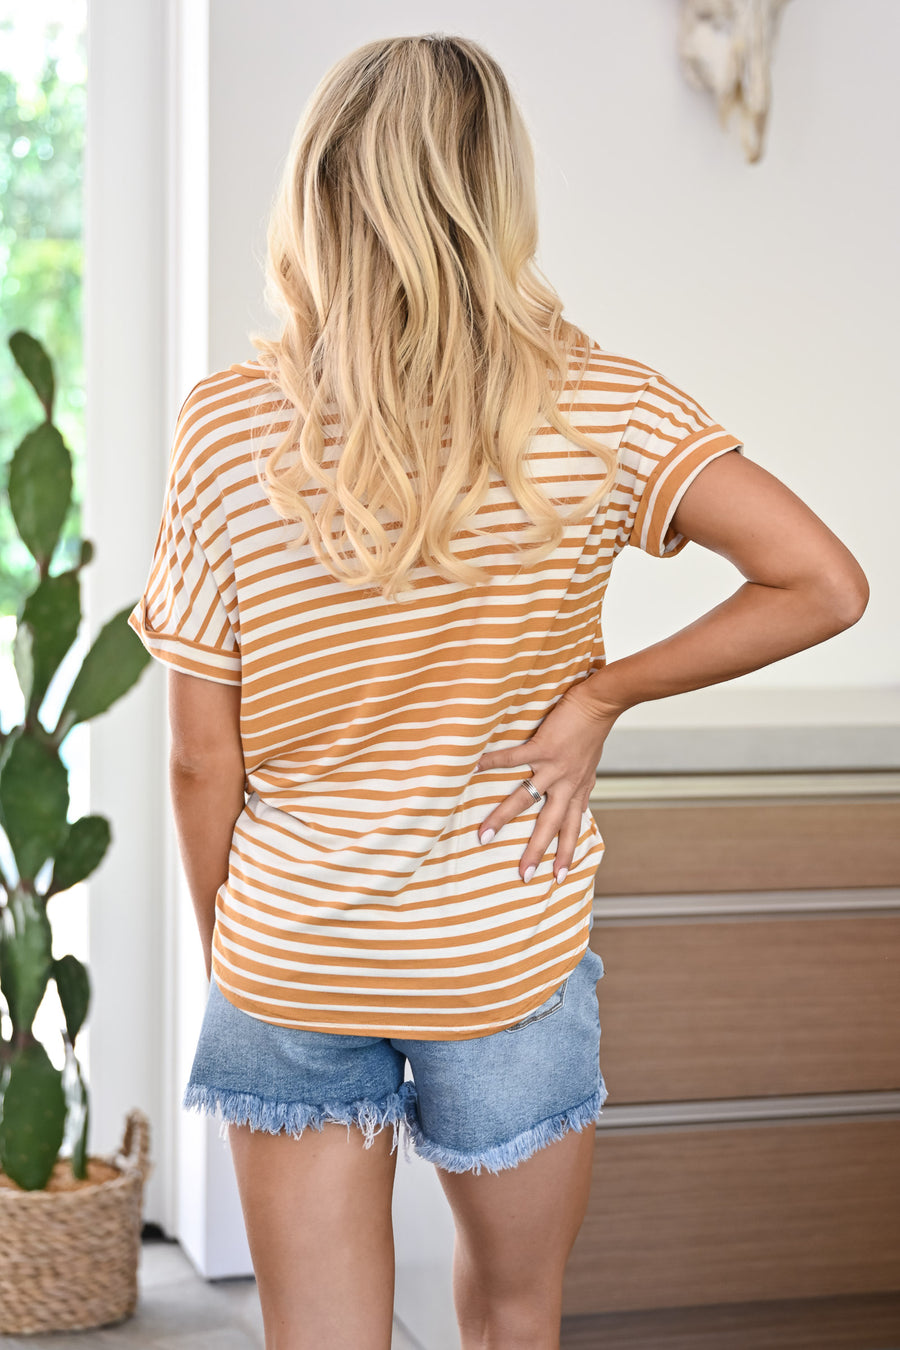 Drops of Sun Top - Mustard womens casual striped v-neck tee closet candy front